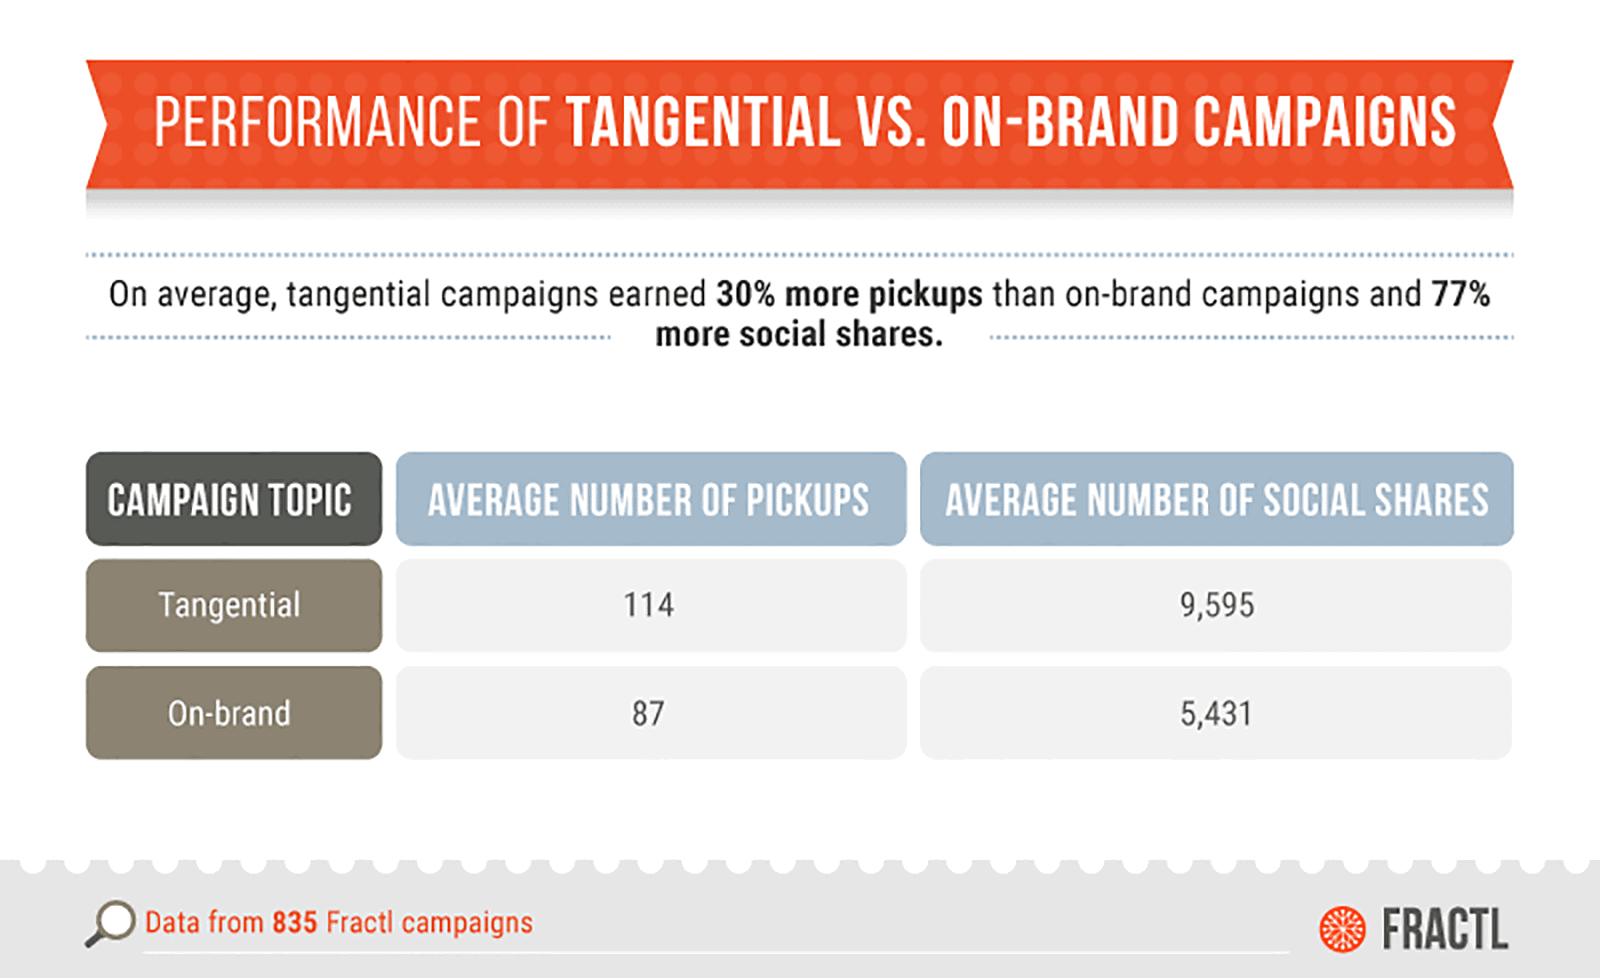 Tangential content resulted in more links and shares